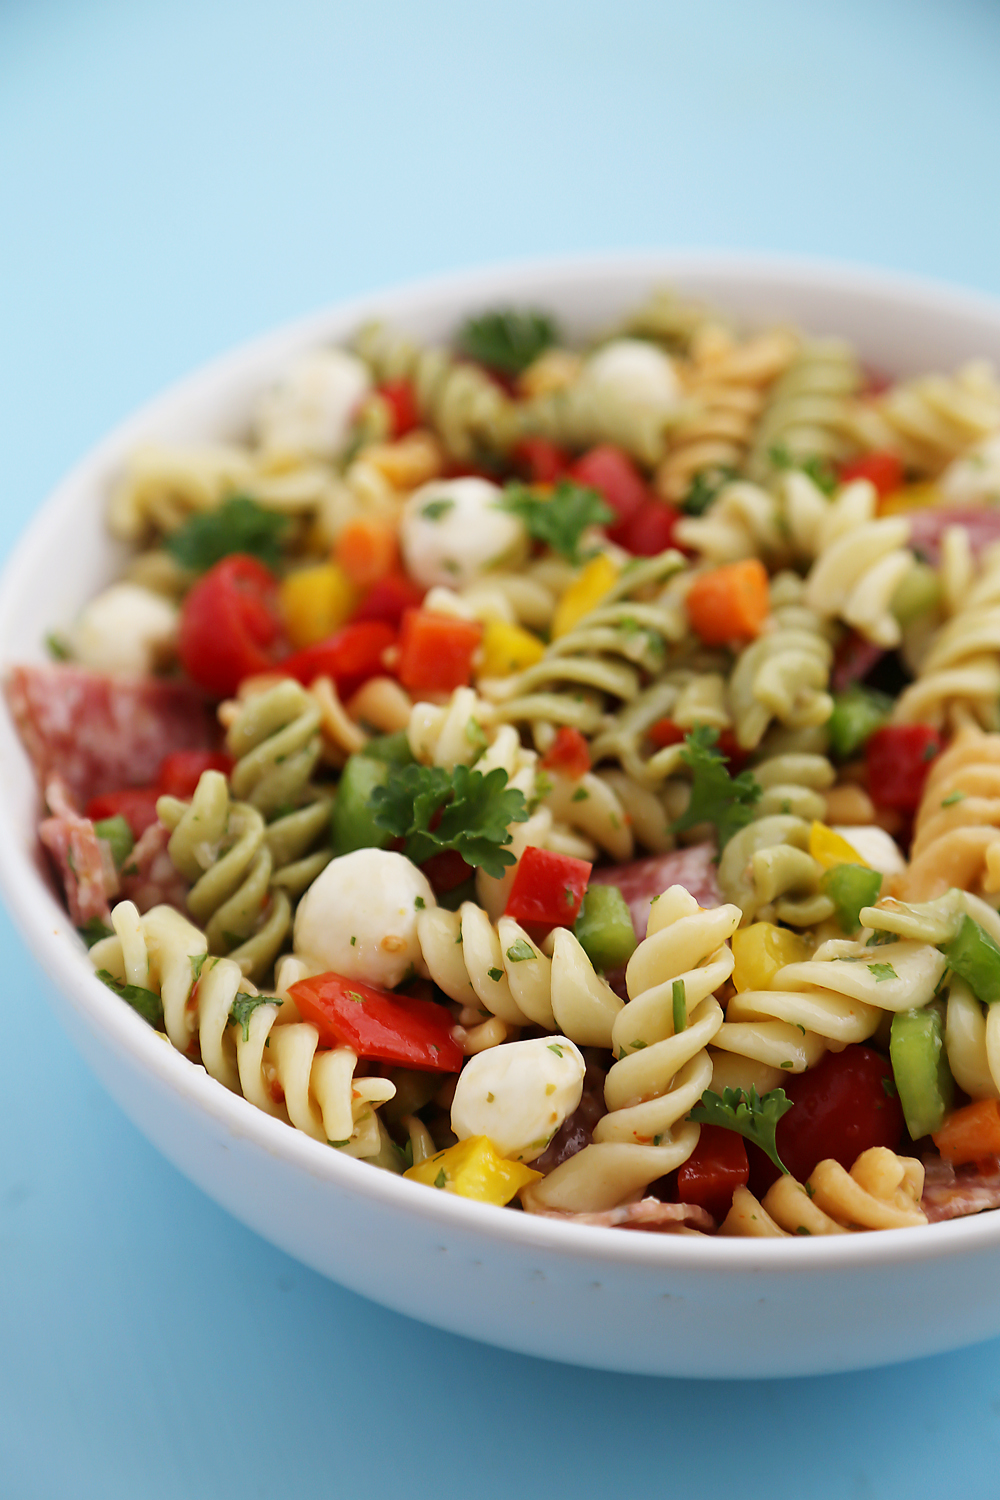 Italian Pasta Salad So Colorful And Flavorful Easy Perfect For Parties This Recipe